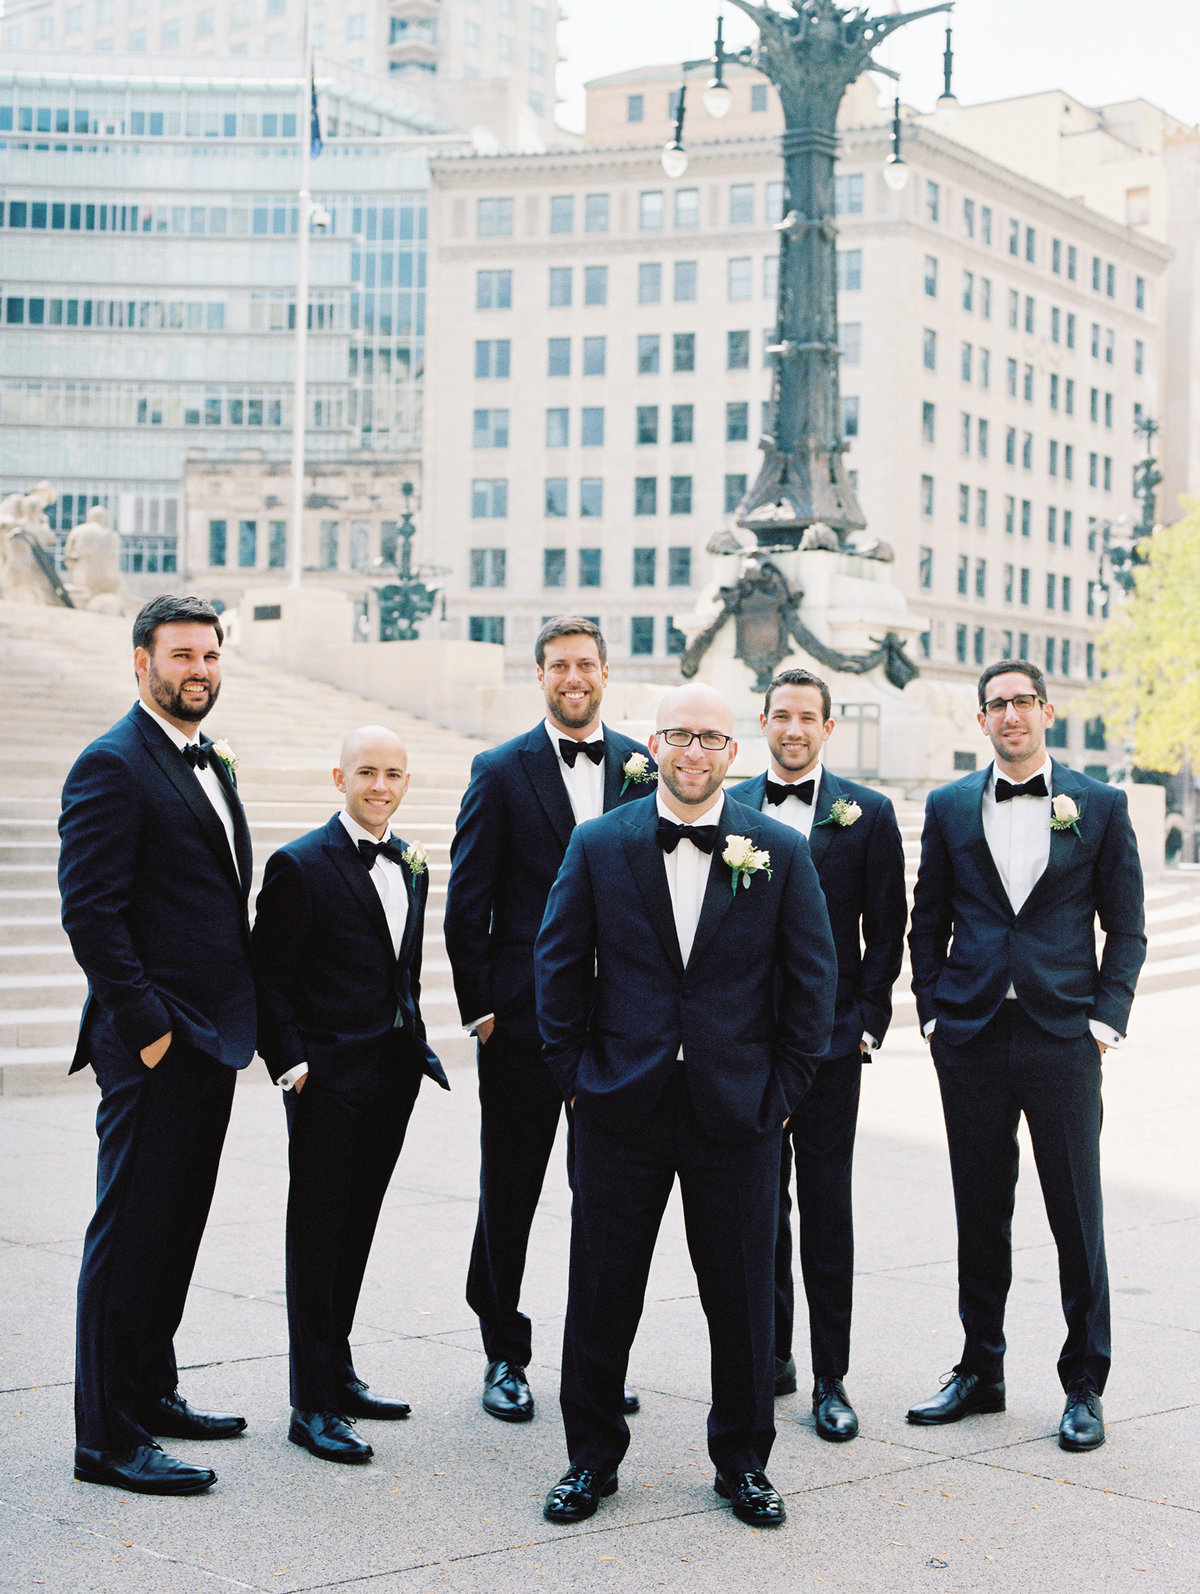 Wedding - Caitlin Sullivan - Indianapolis, Indiana Photographer - Photo - 18